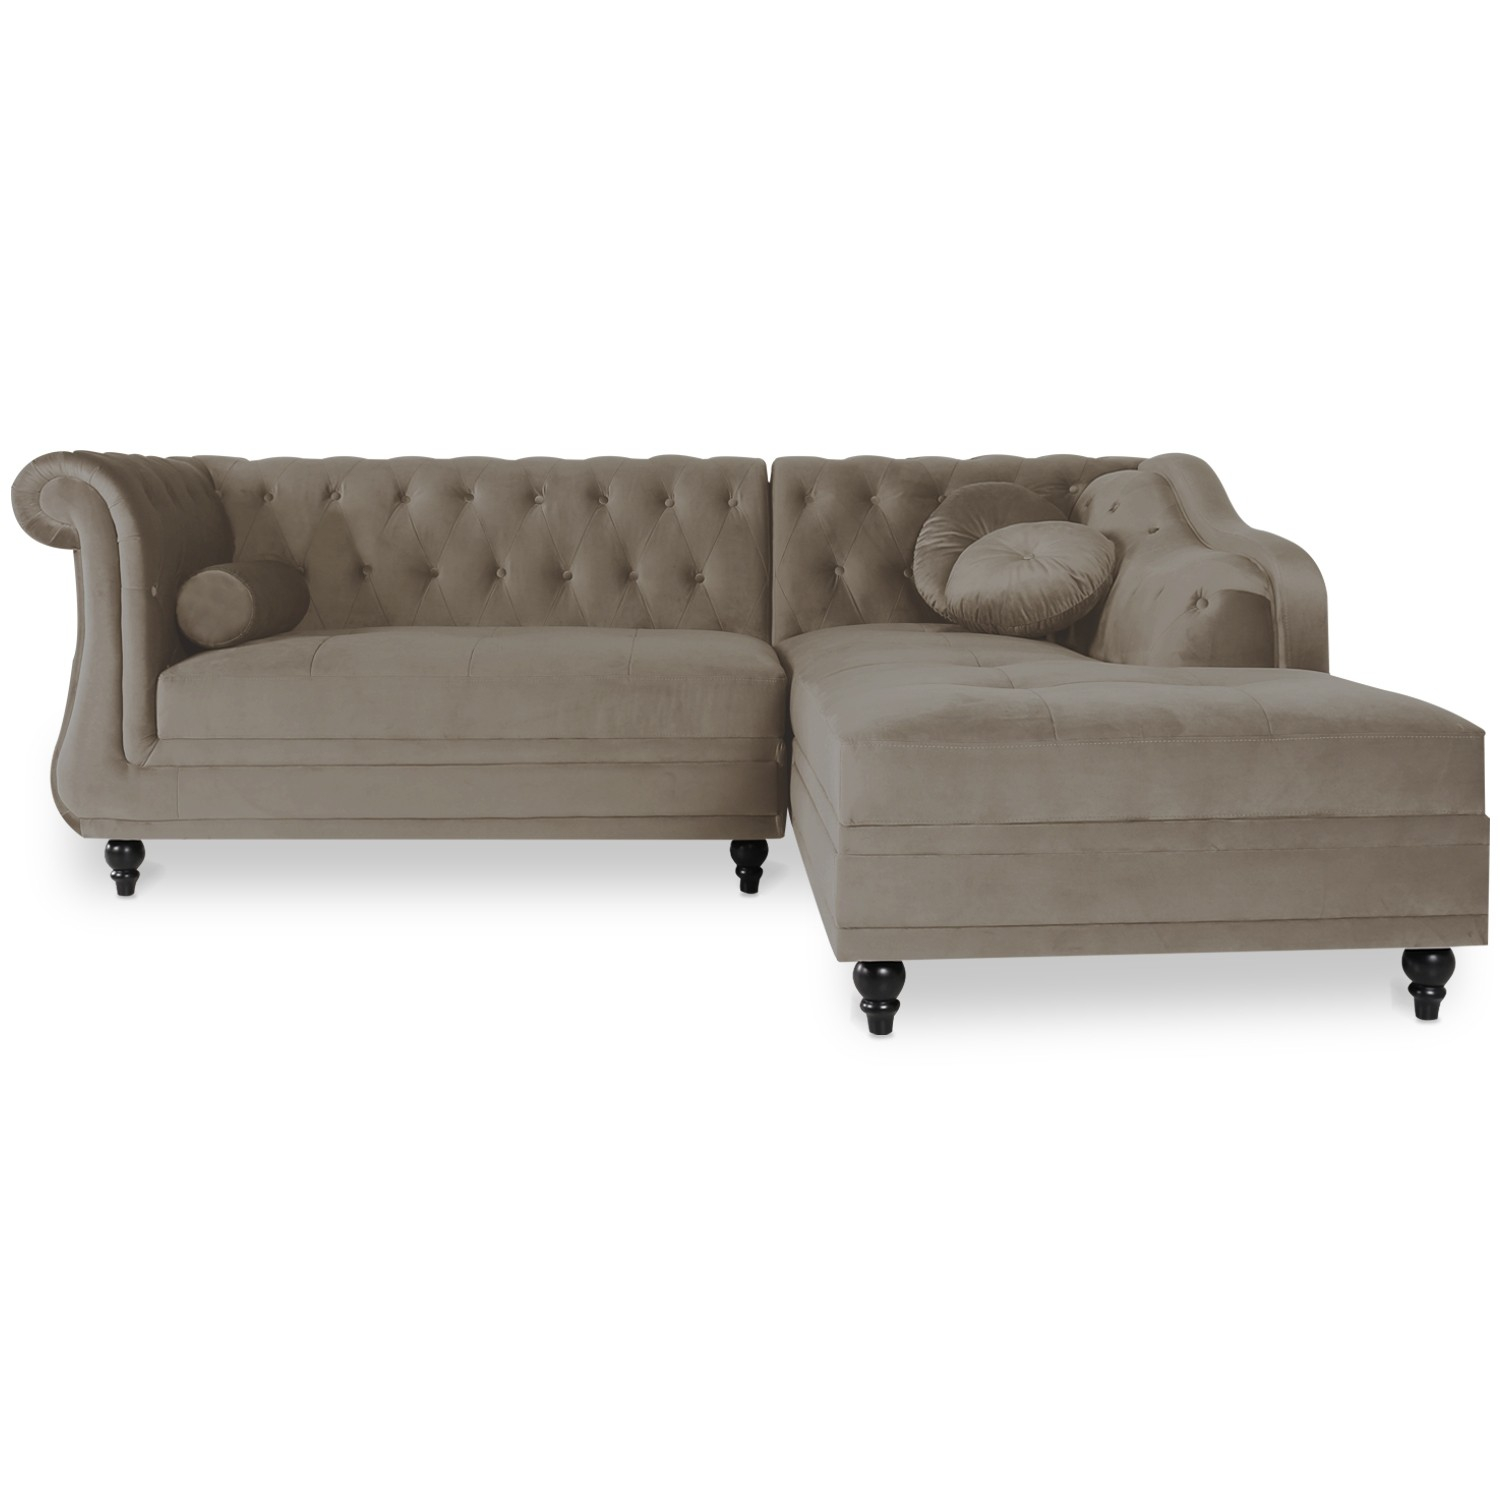 Canapé d angle Droit Empire Velours Taupe style Chesterfield